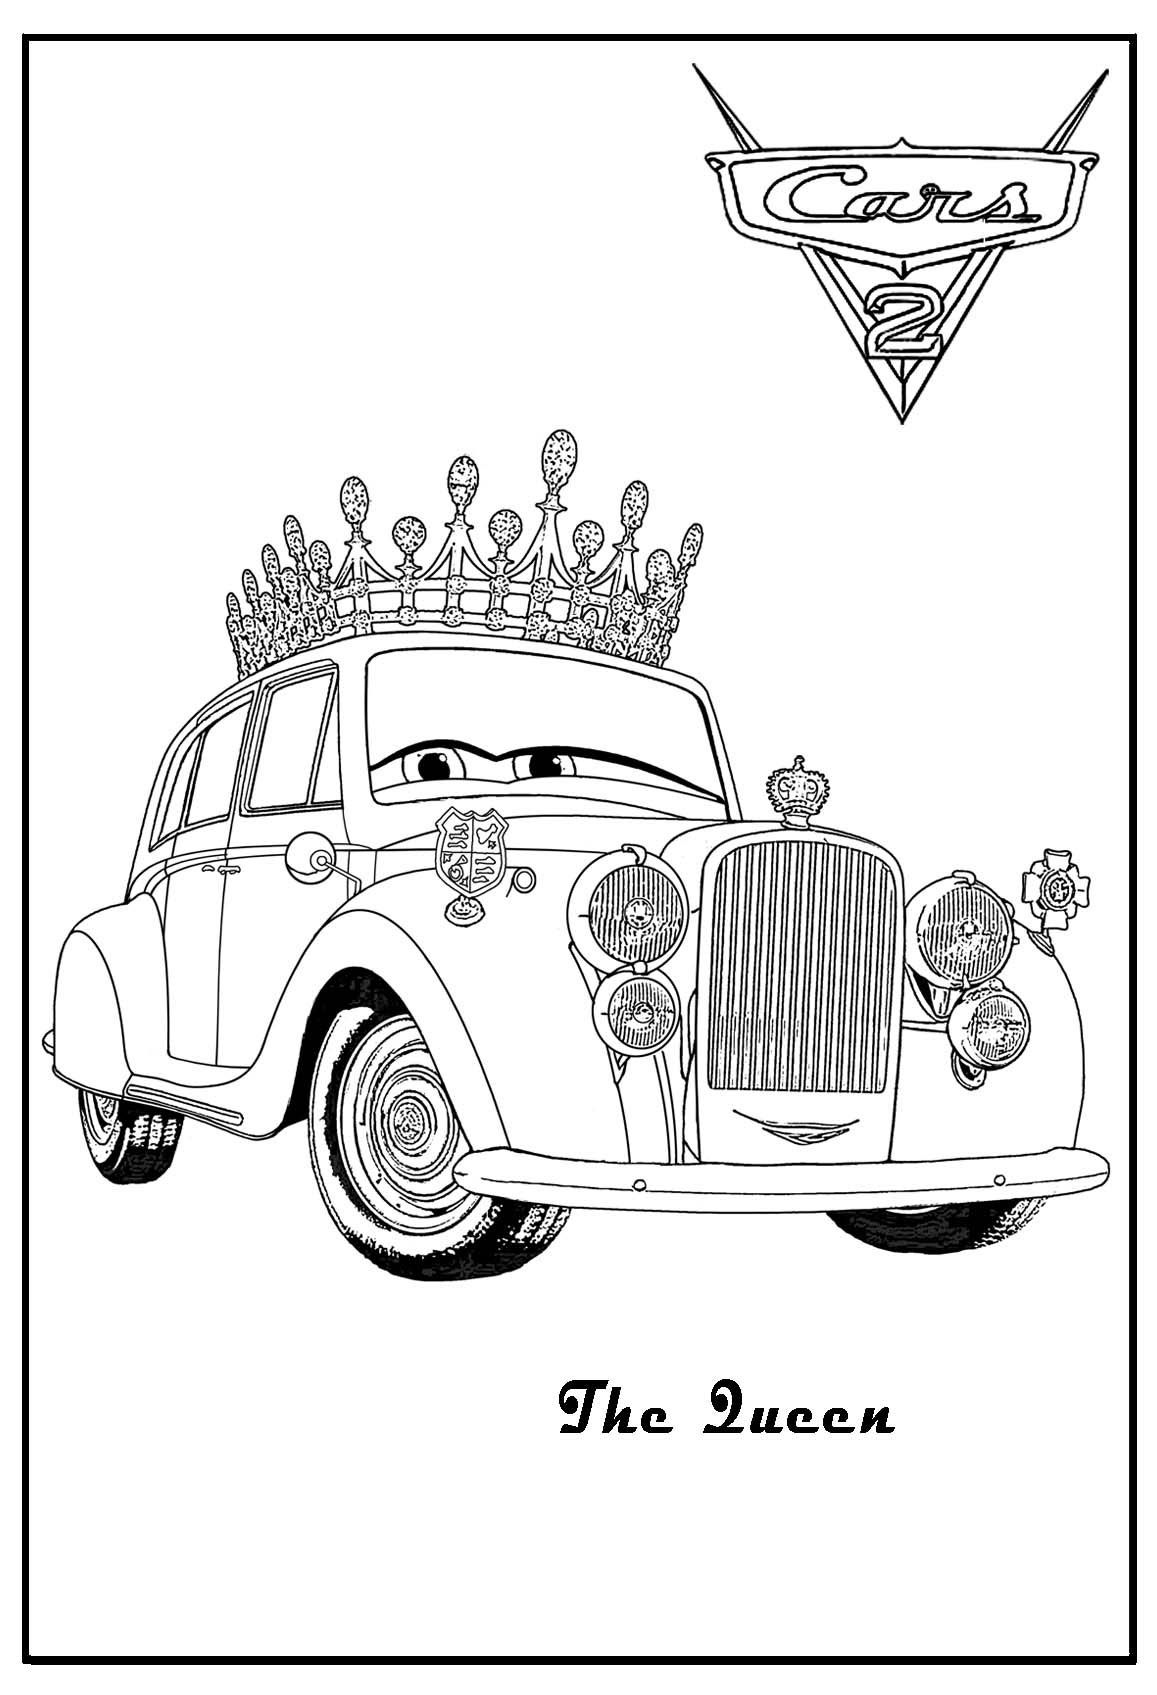 Cars 2 Printable Coloring Pages Cars Coloring The Queen Cars